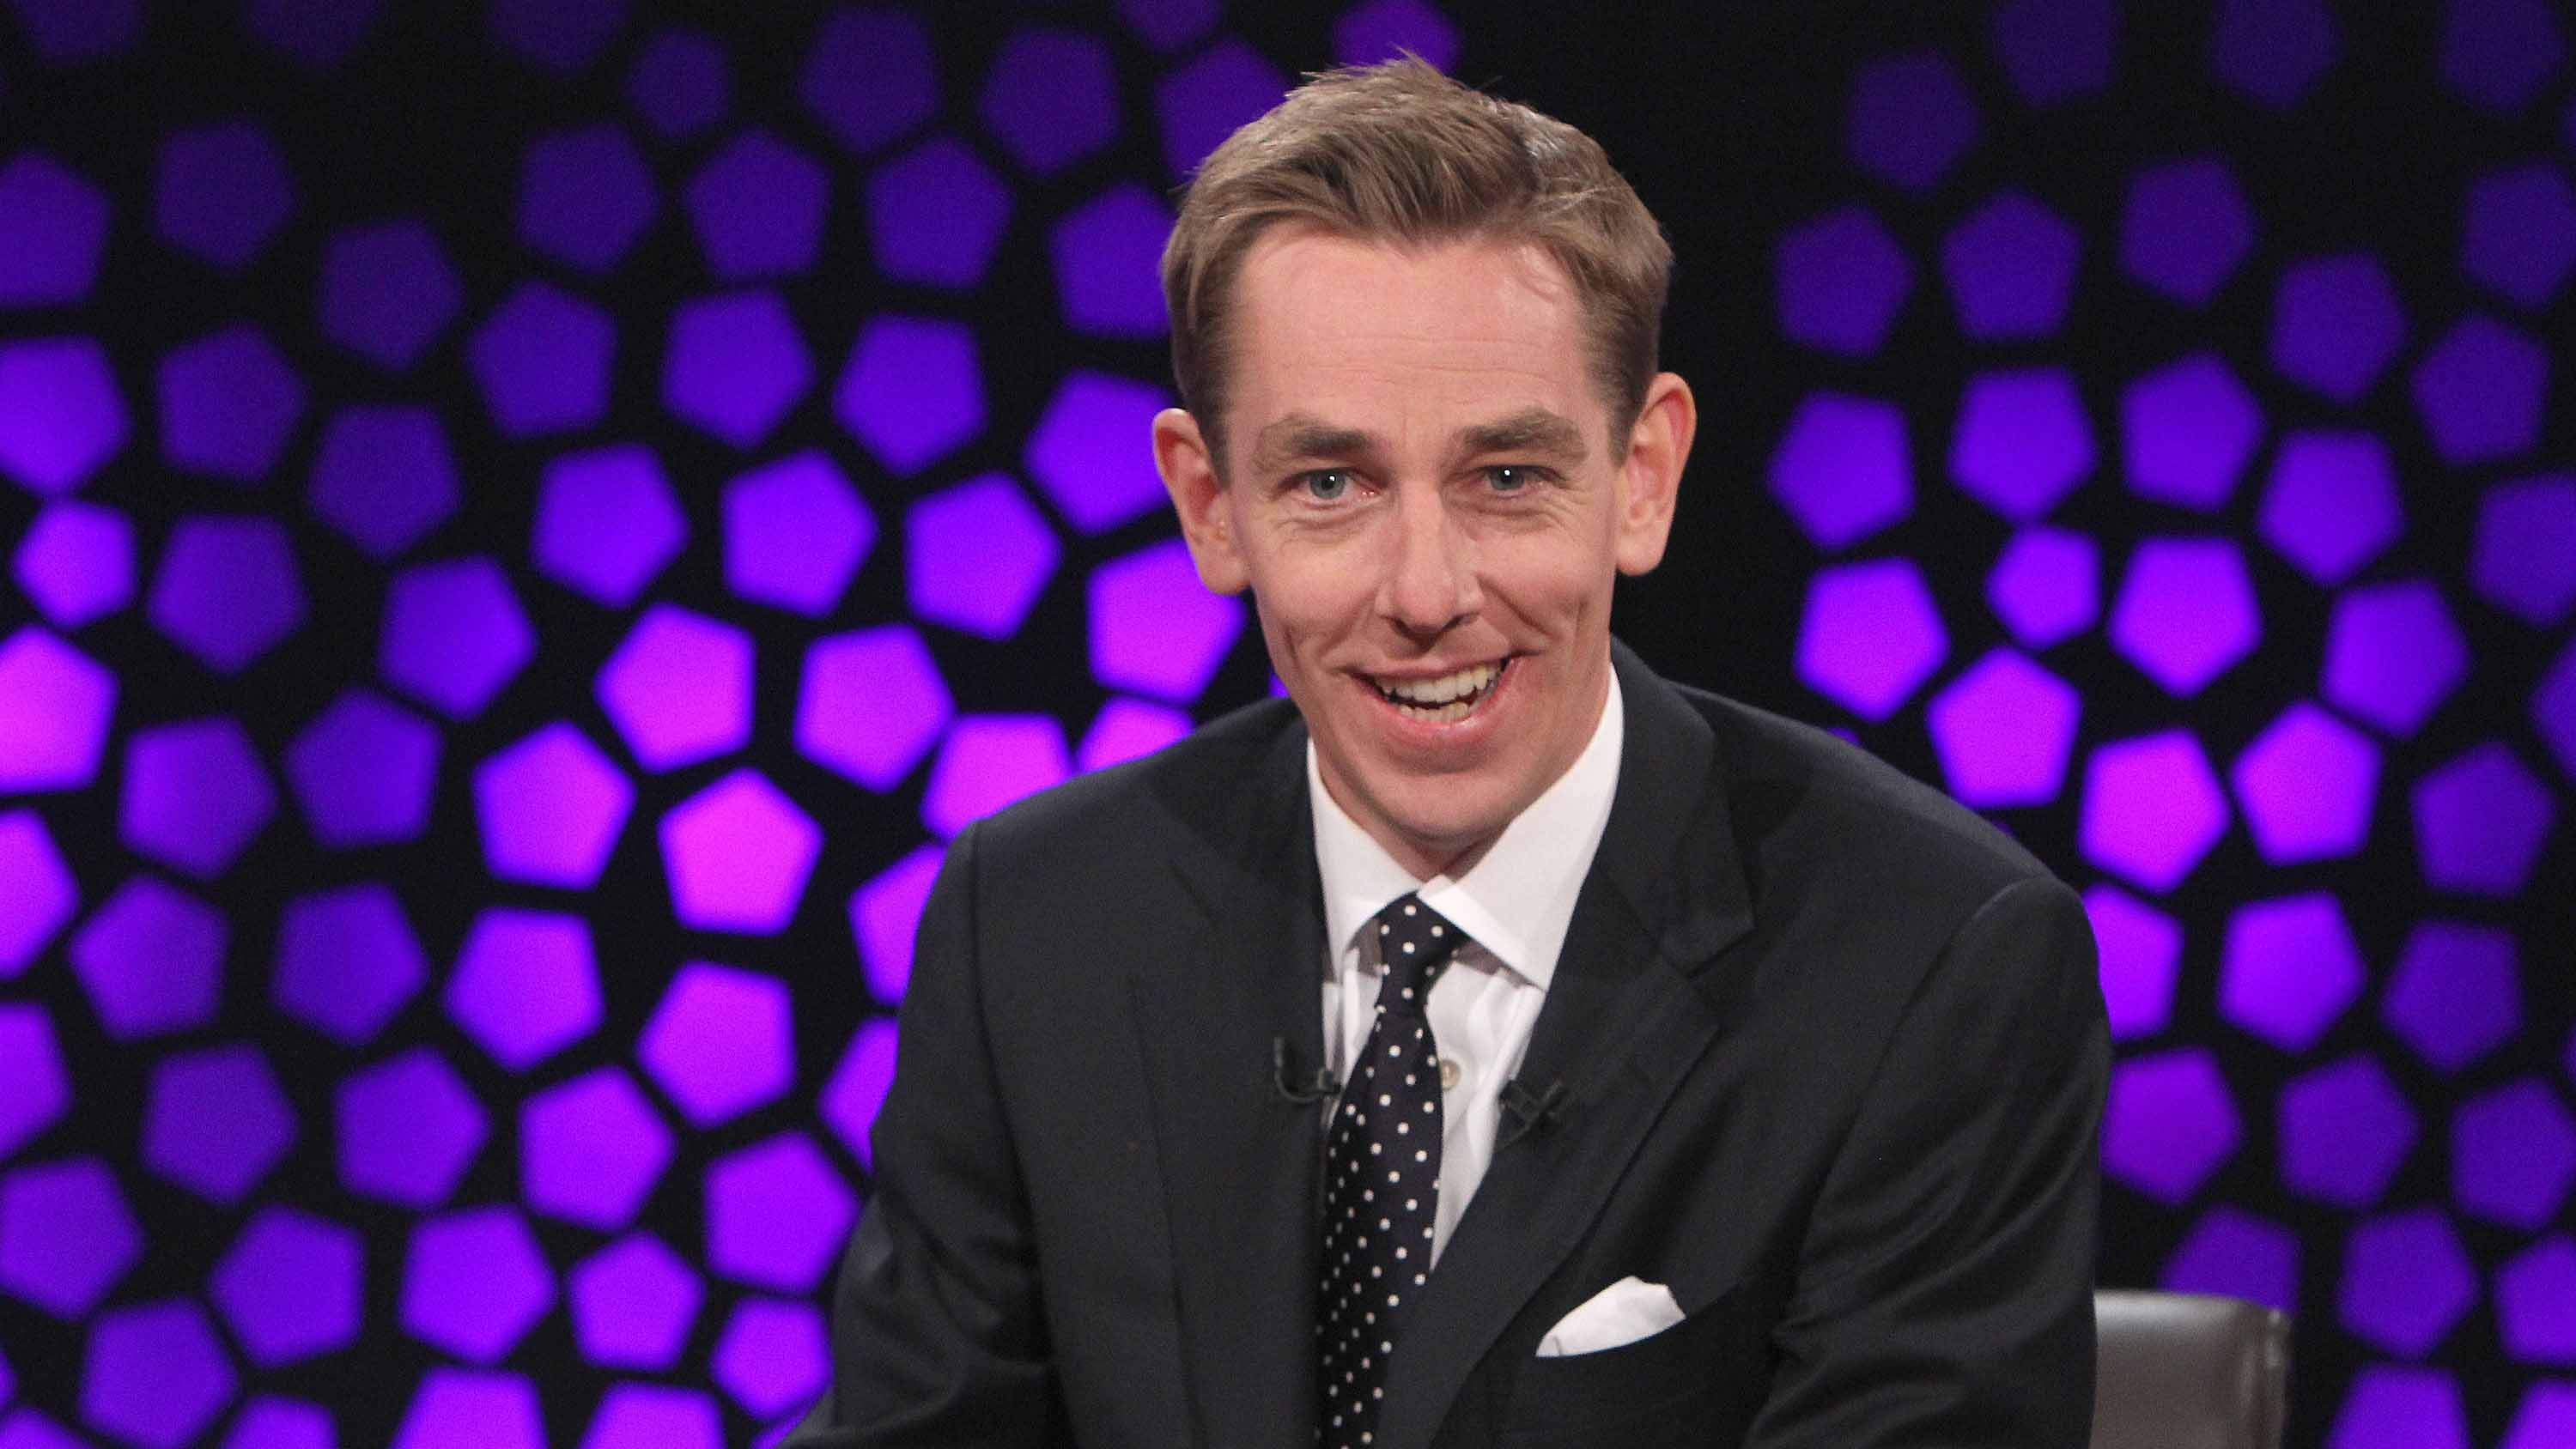 The Late Late Show To Broadcast From The UK